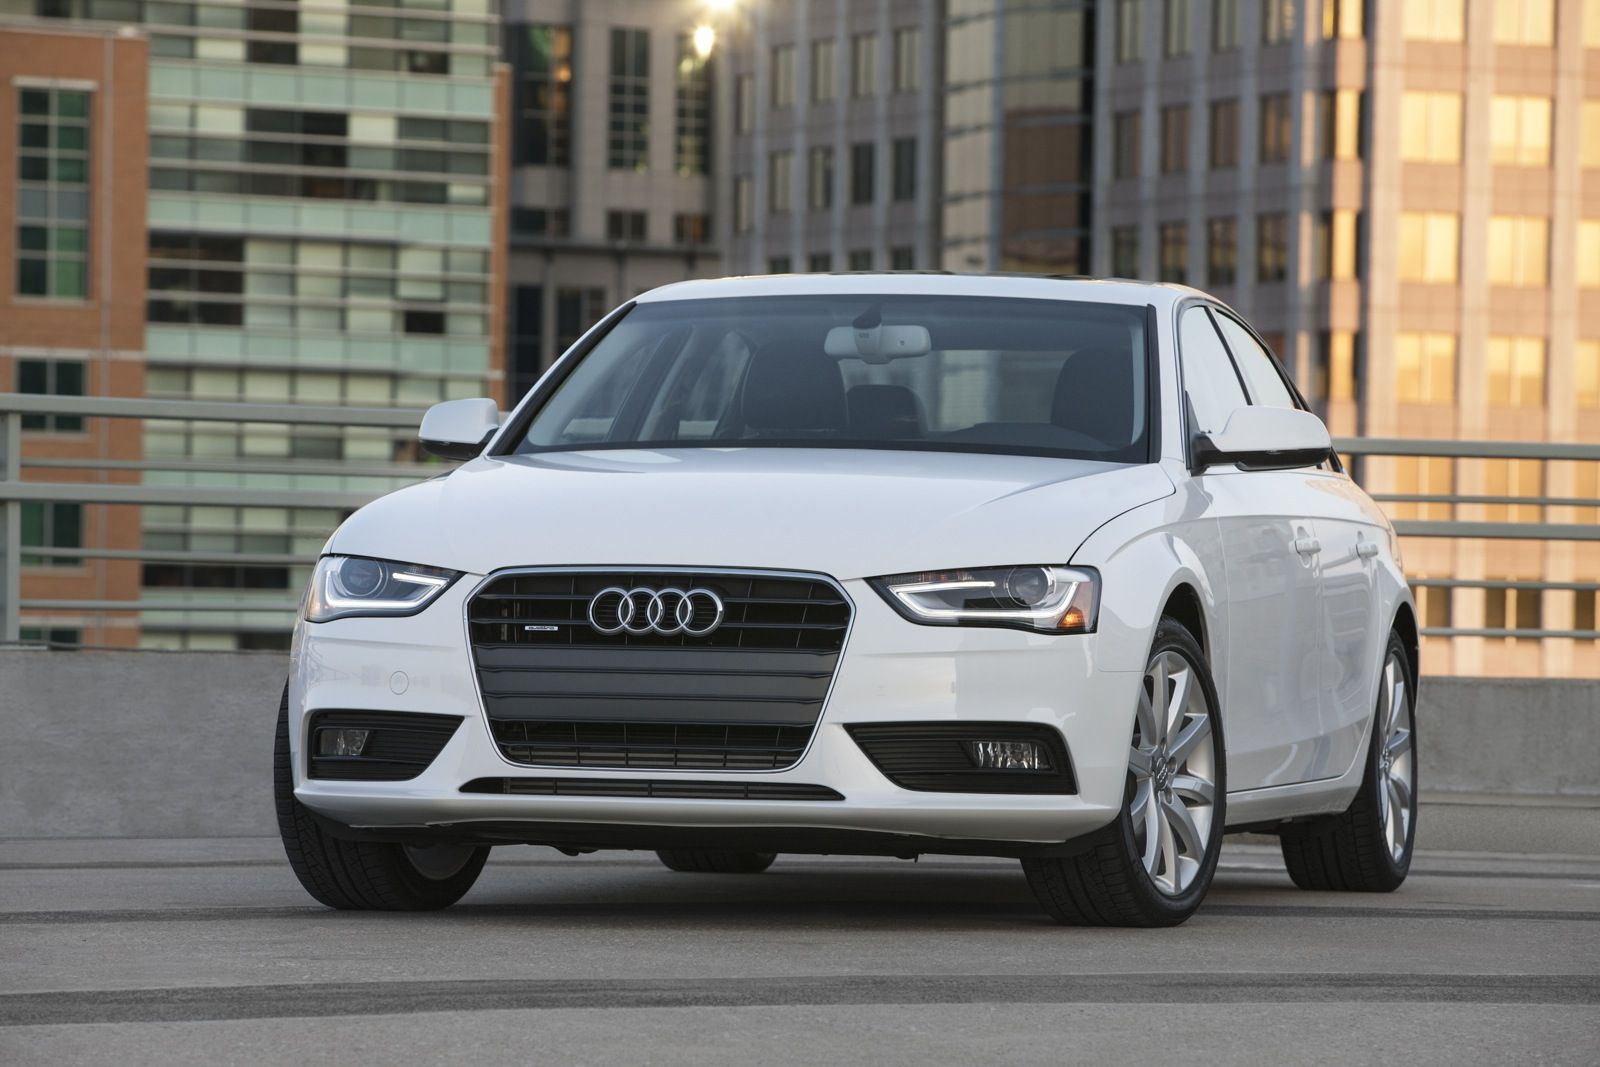 Four Circle Car Logo - U.S. To Get Audi A4 Diesel, But Not Until Next-Generation B9 Model